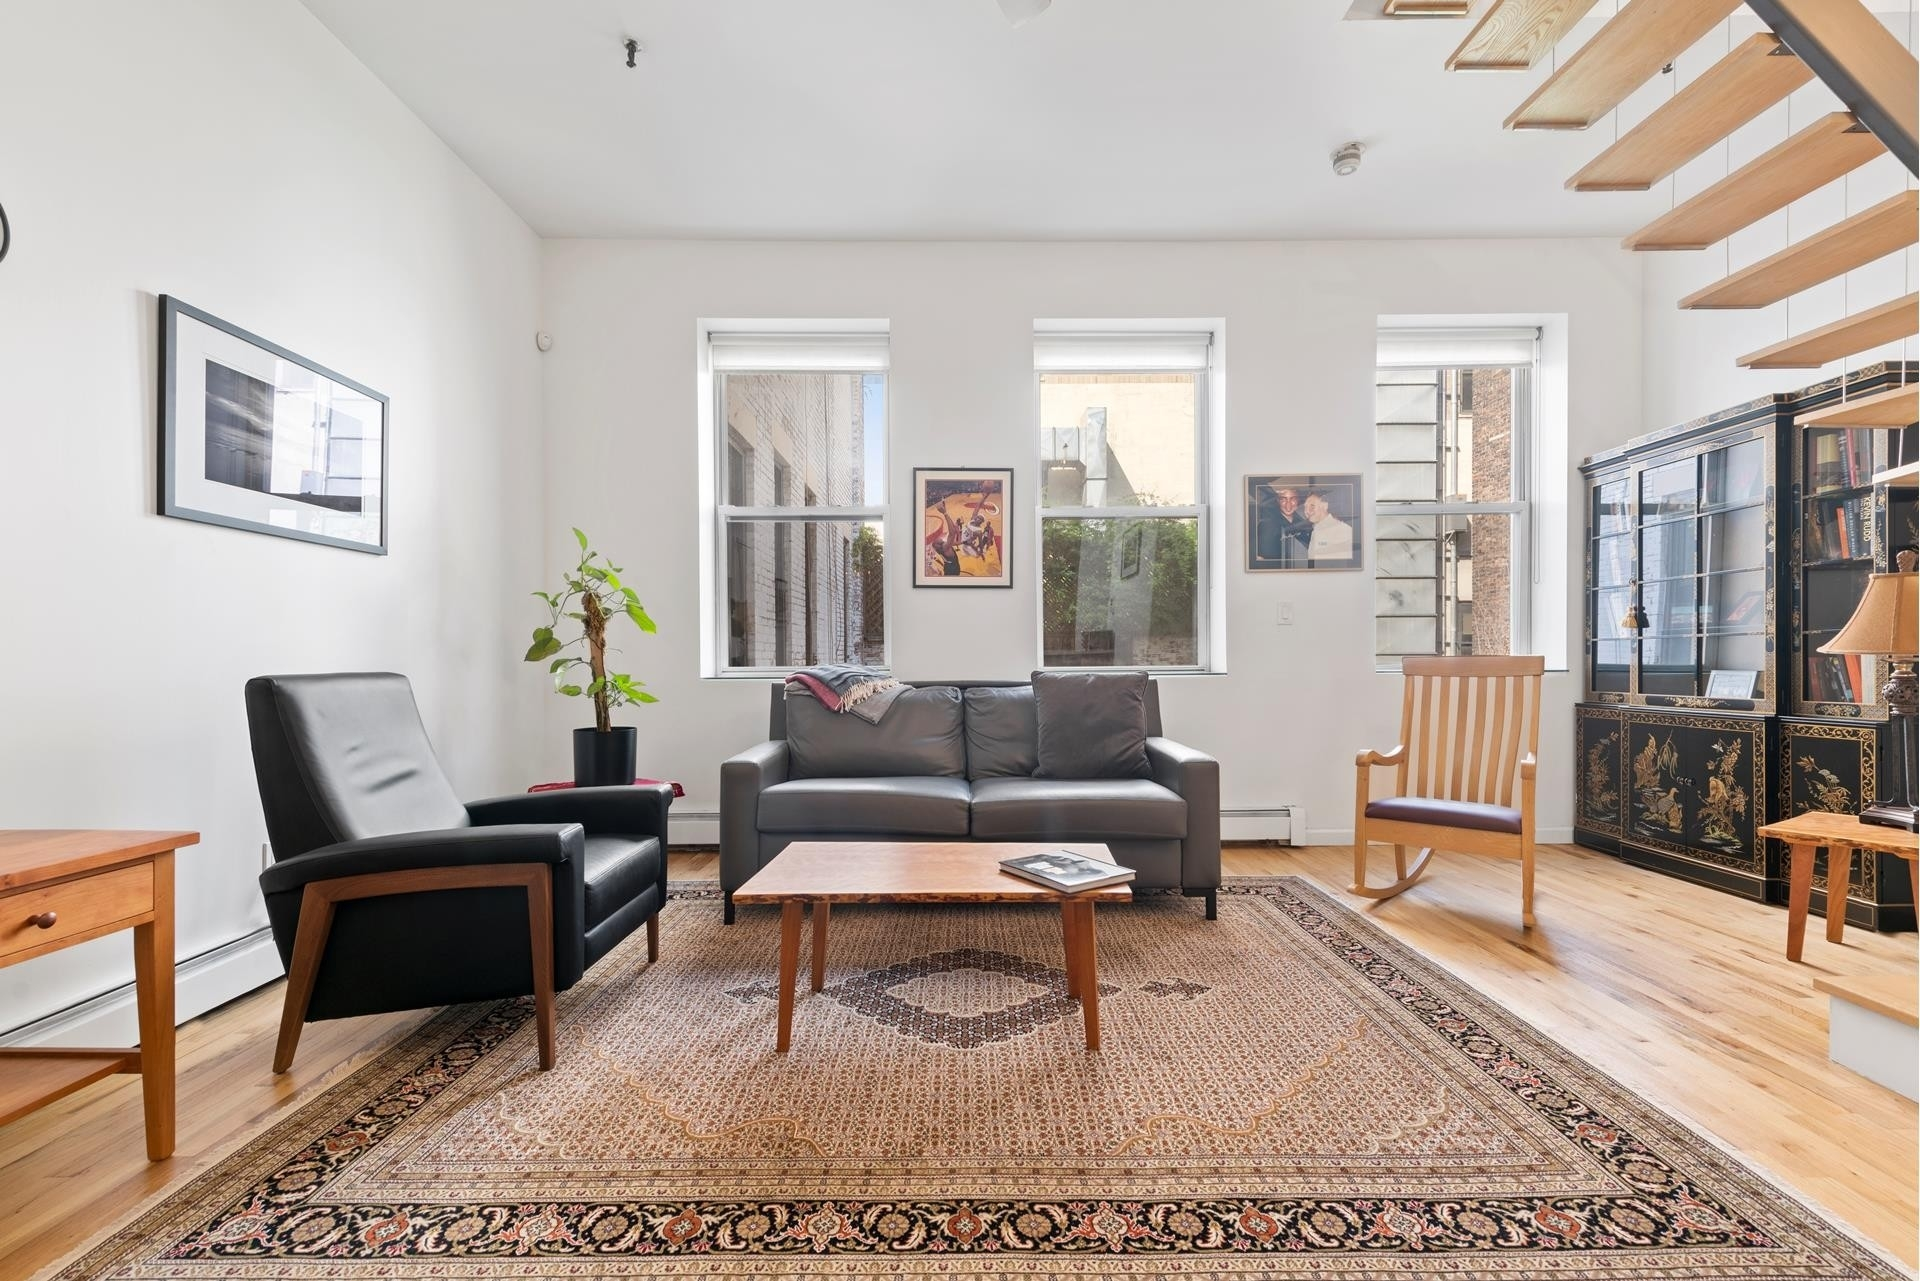 Co-op Properties for Sale at 307 East 12th St, 2A East Village, New York, NY 10003